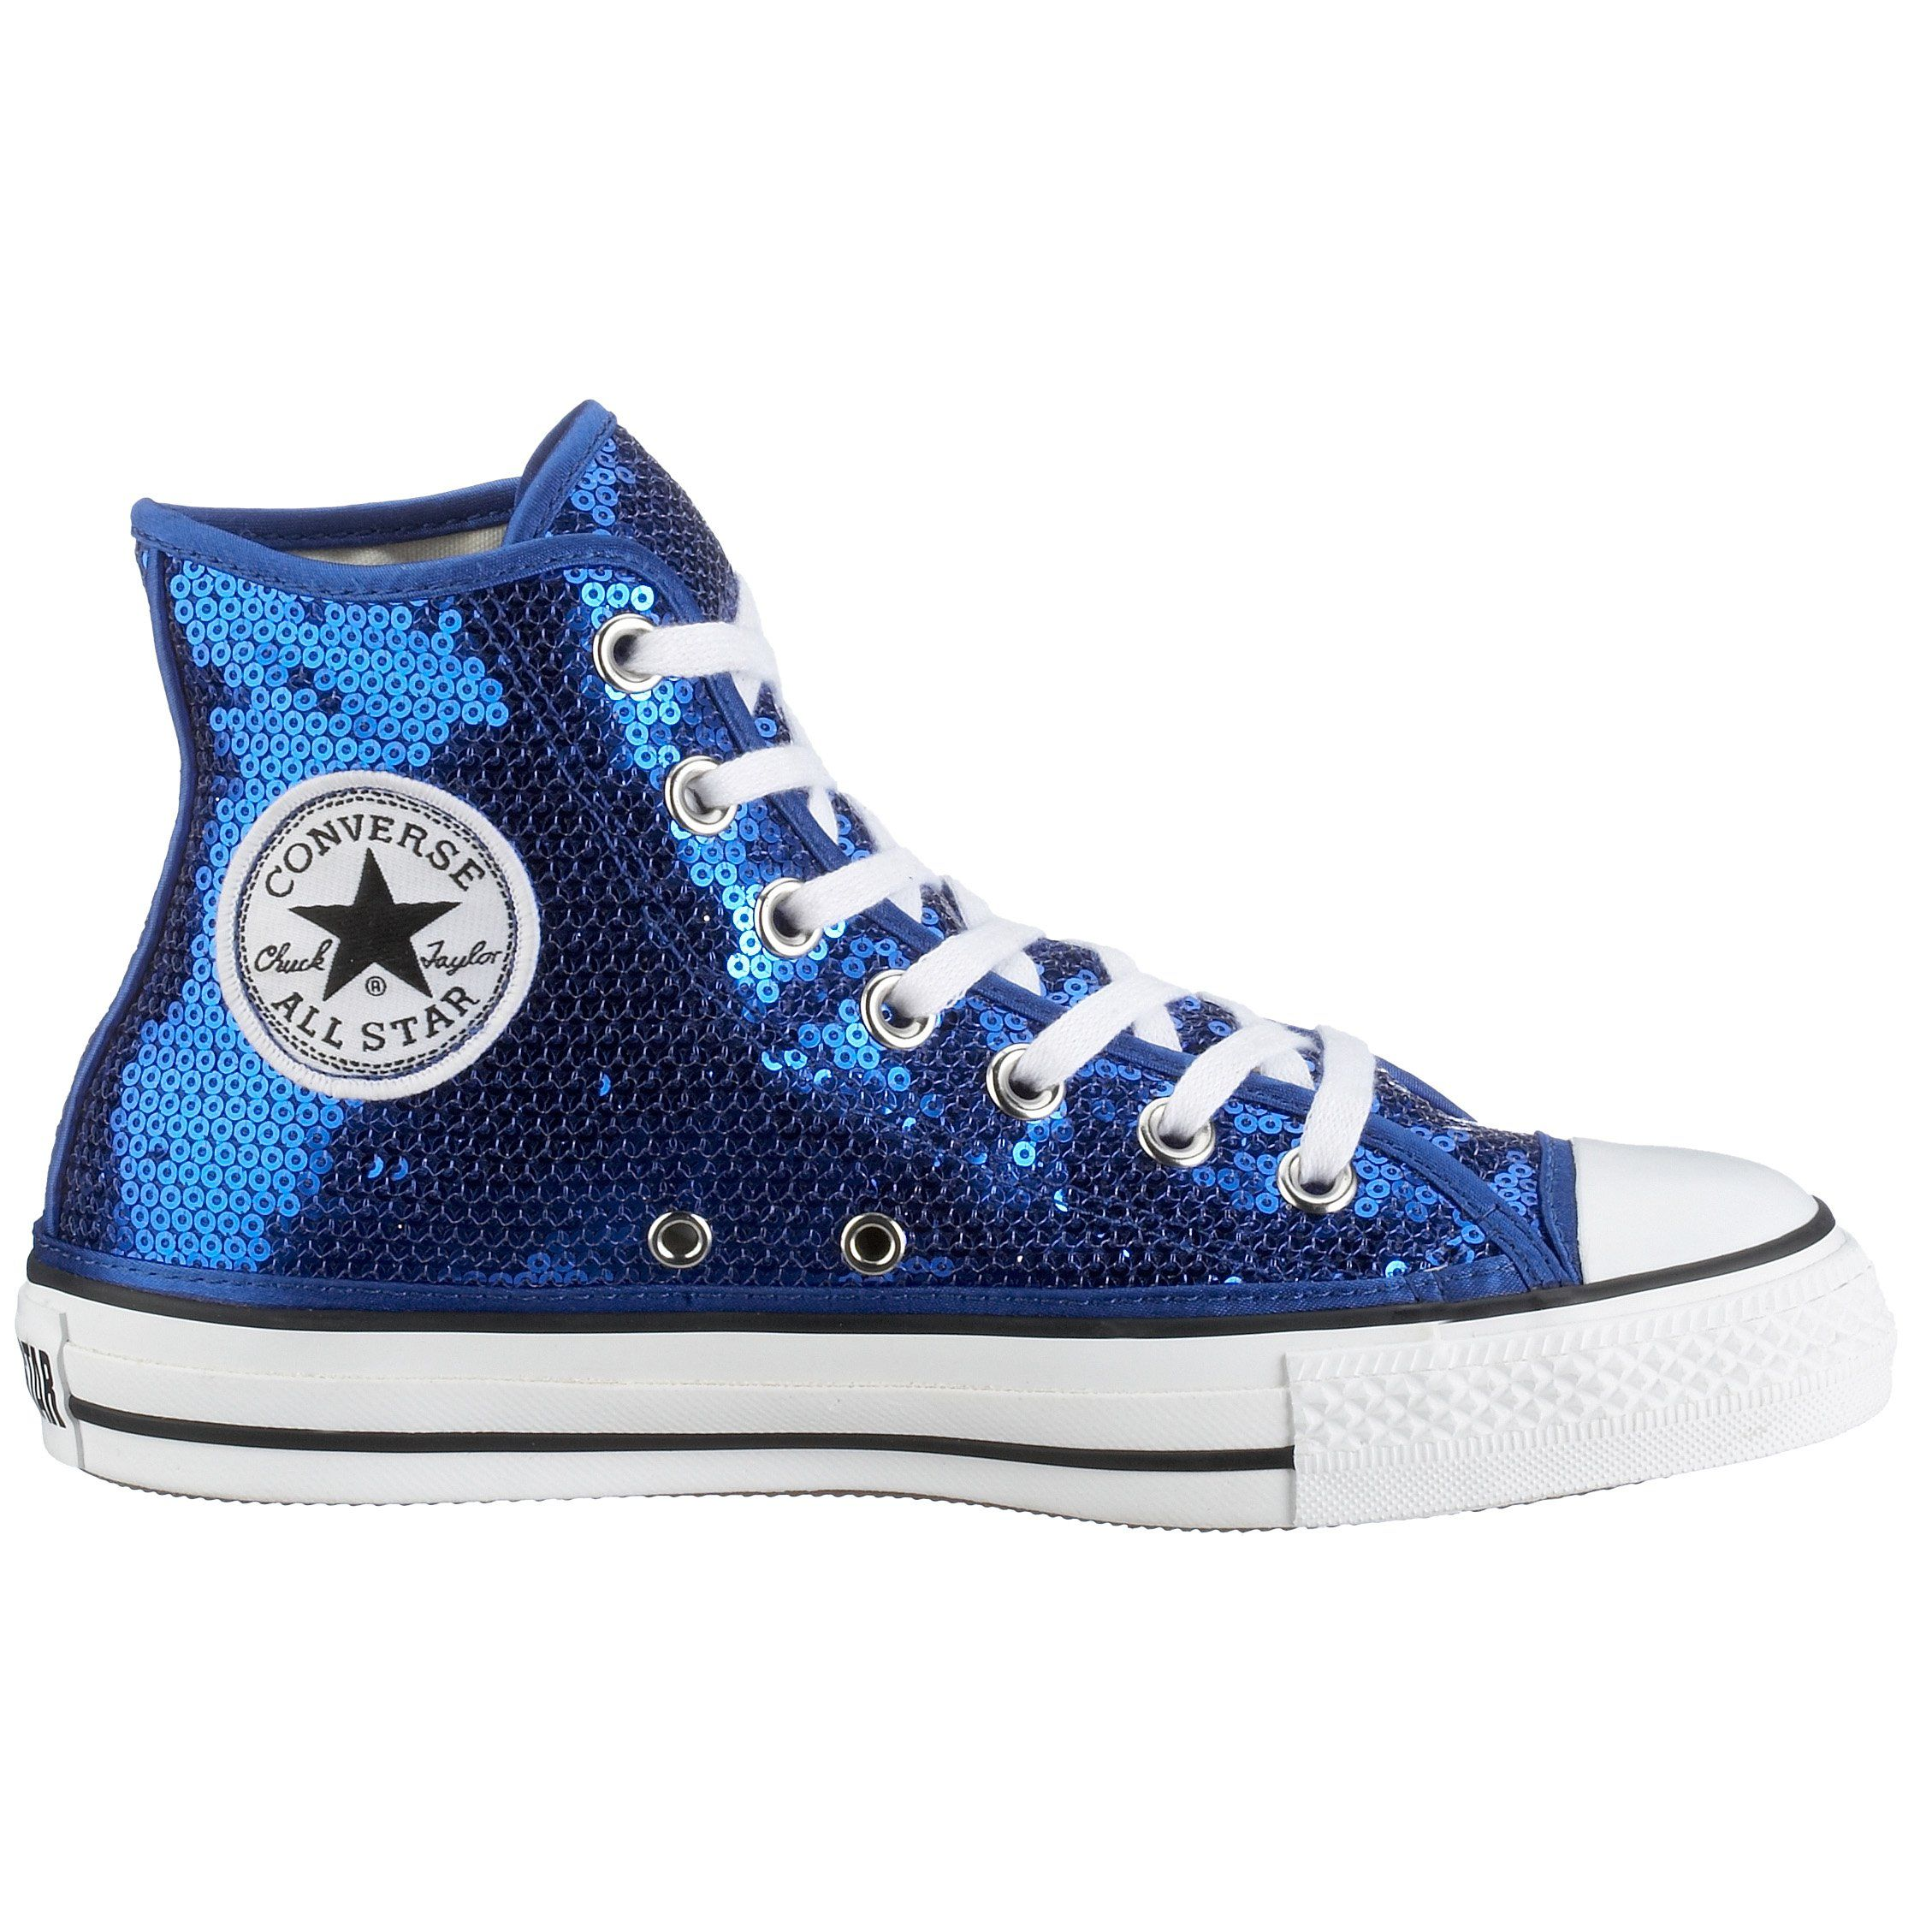 Royal blue sequin Converse high top sneakers | Ropa